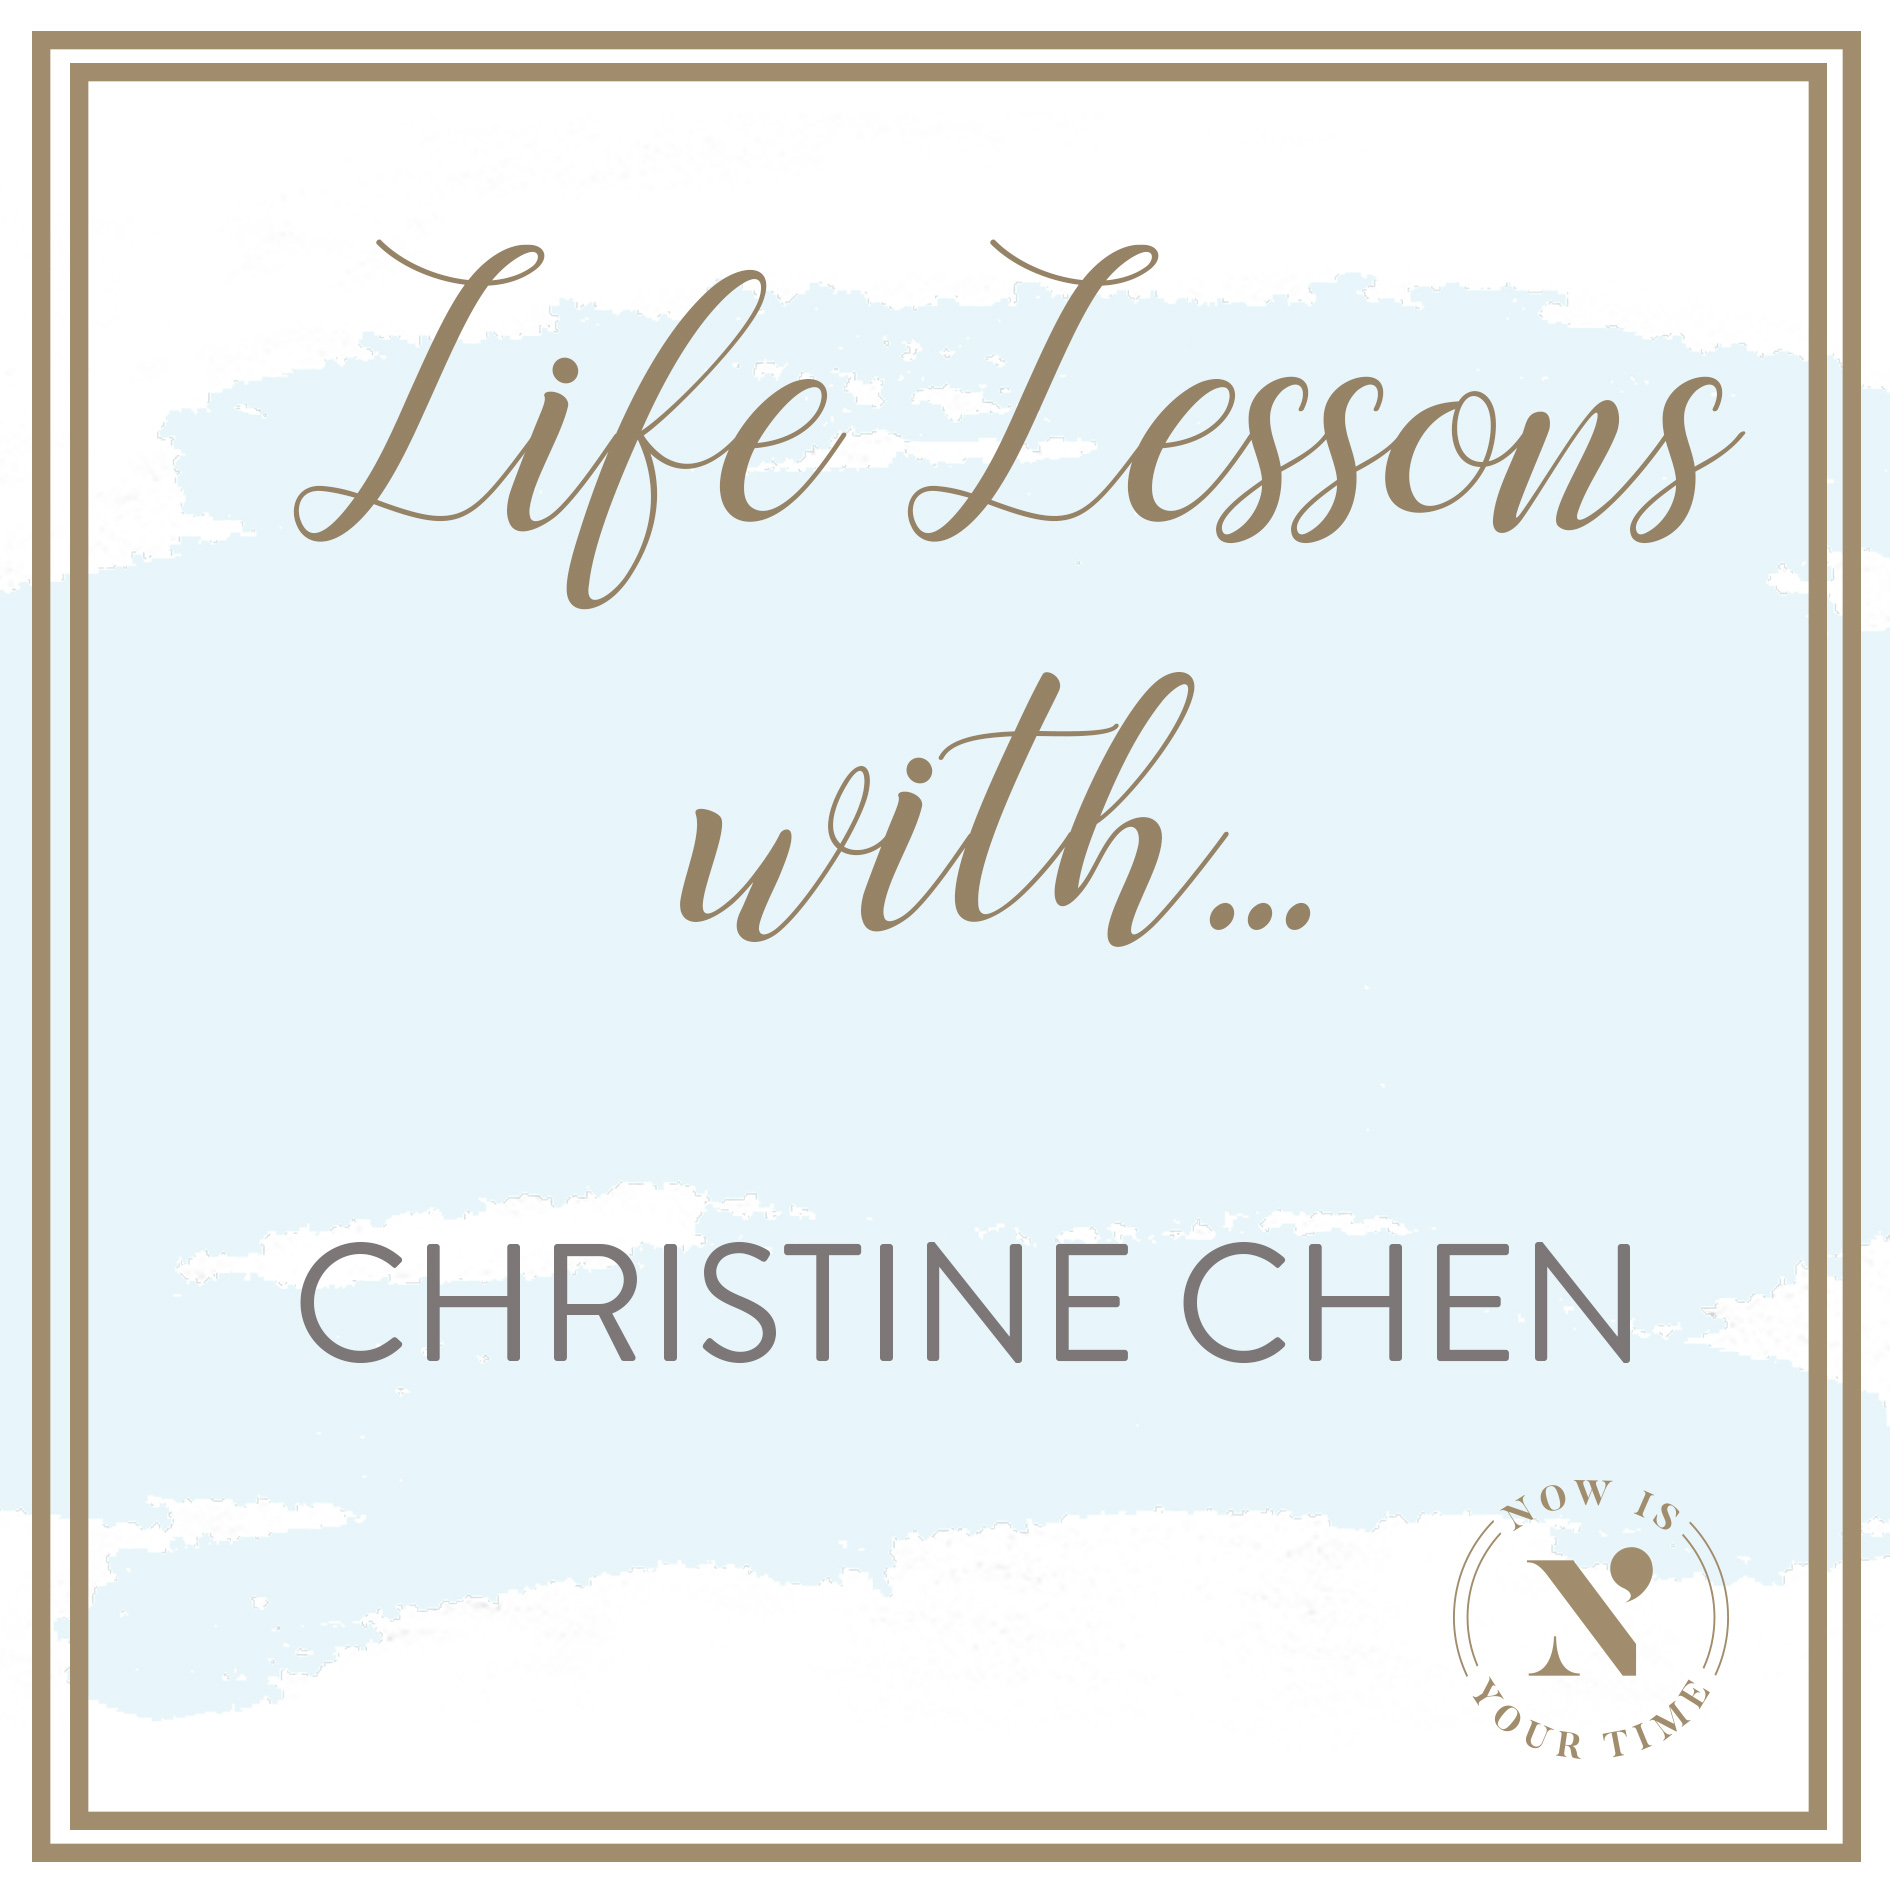 Life Lessons with podcast artwork - CHRISTINE CHEN.jpg